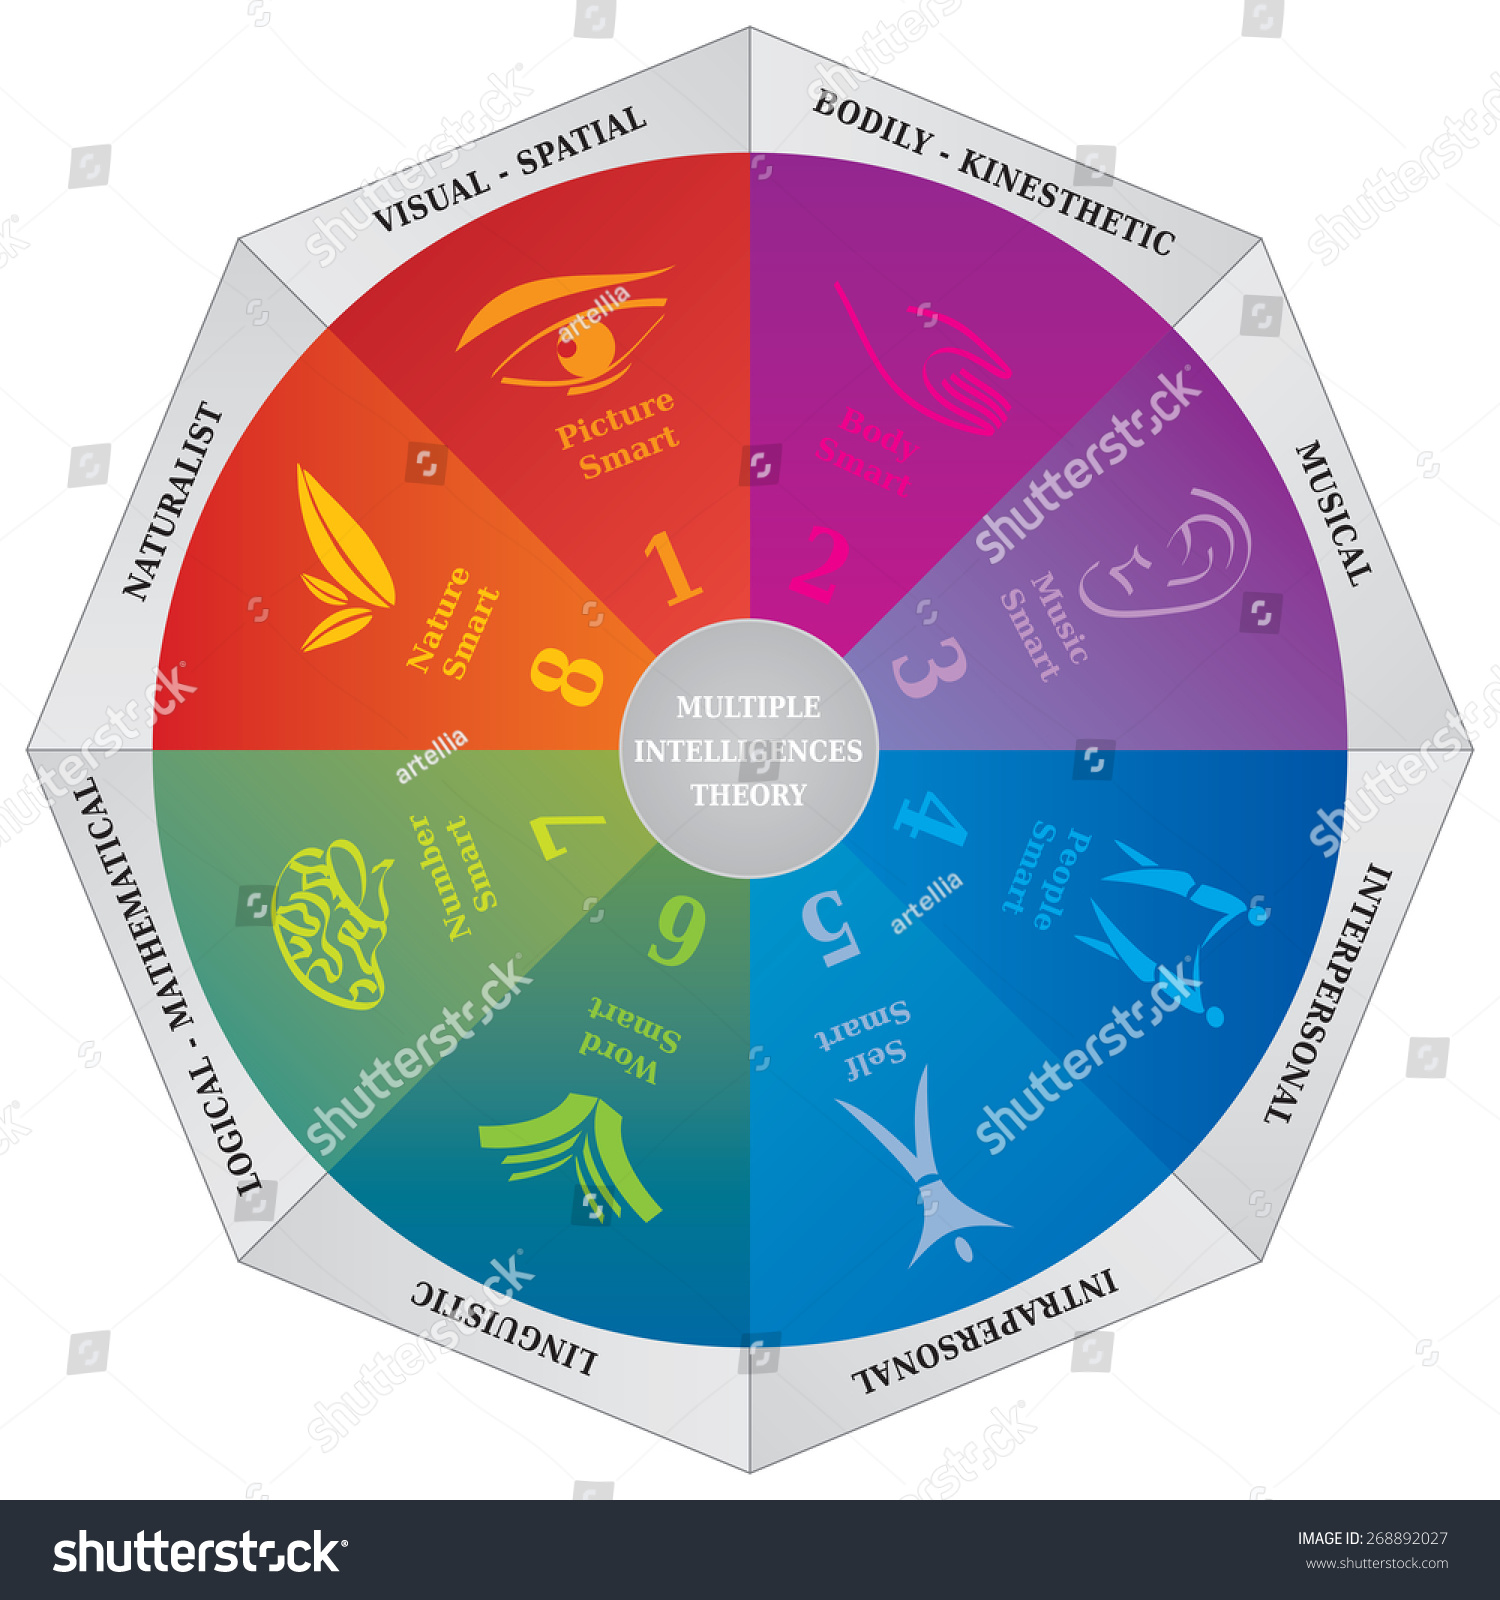 gardner s multiple intelligences What is the theory of multiple intelligences (mi) howard gardner claims that all human beings have multiple intelligences these multiple intelligences can be.